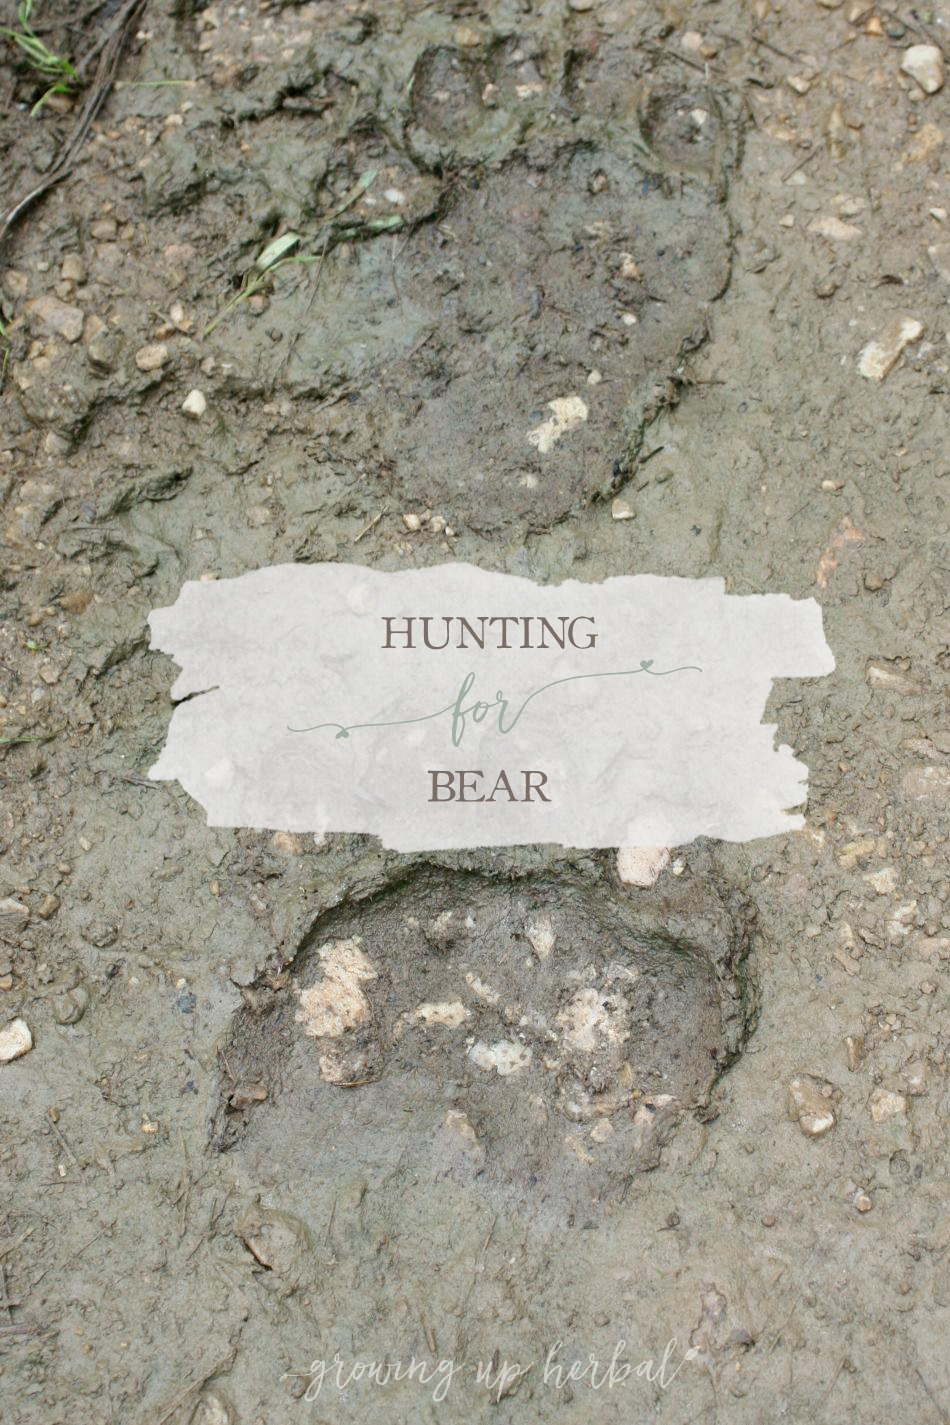 Hunting For Bear | Growing Up Herbal | Come along an outdoor adventure and track a wild bear with us!